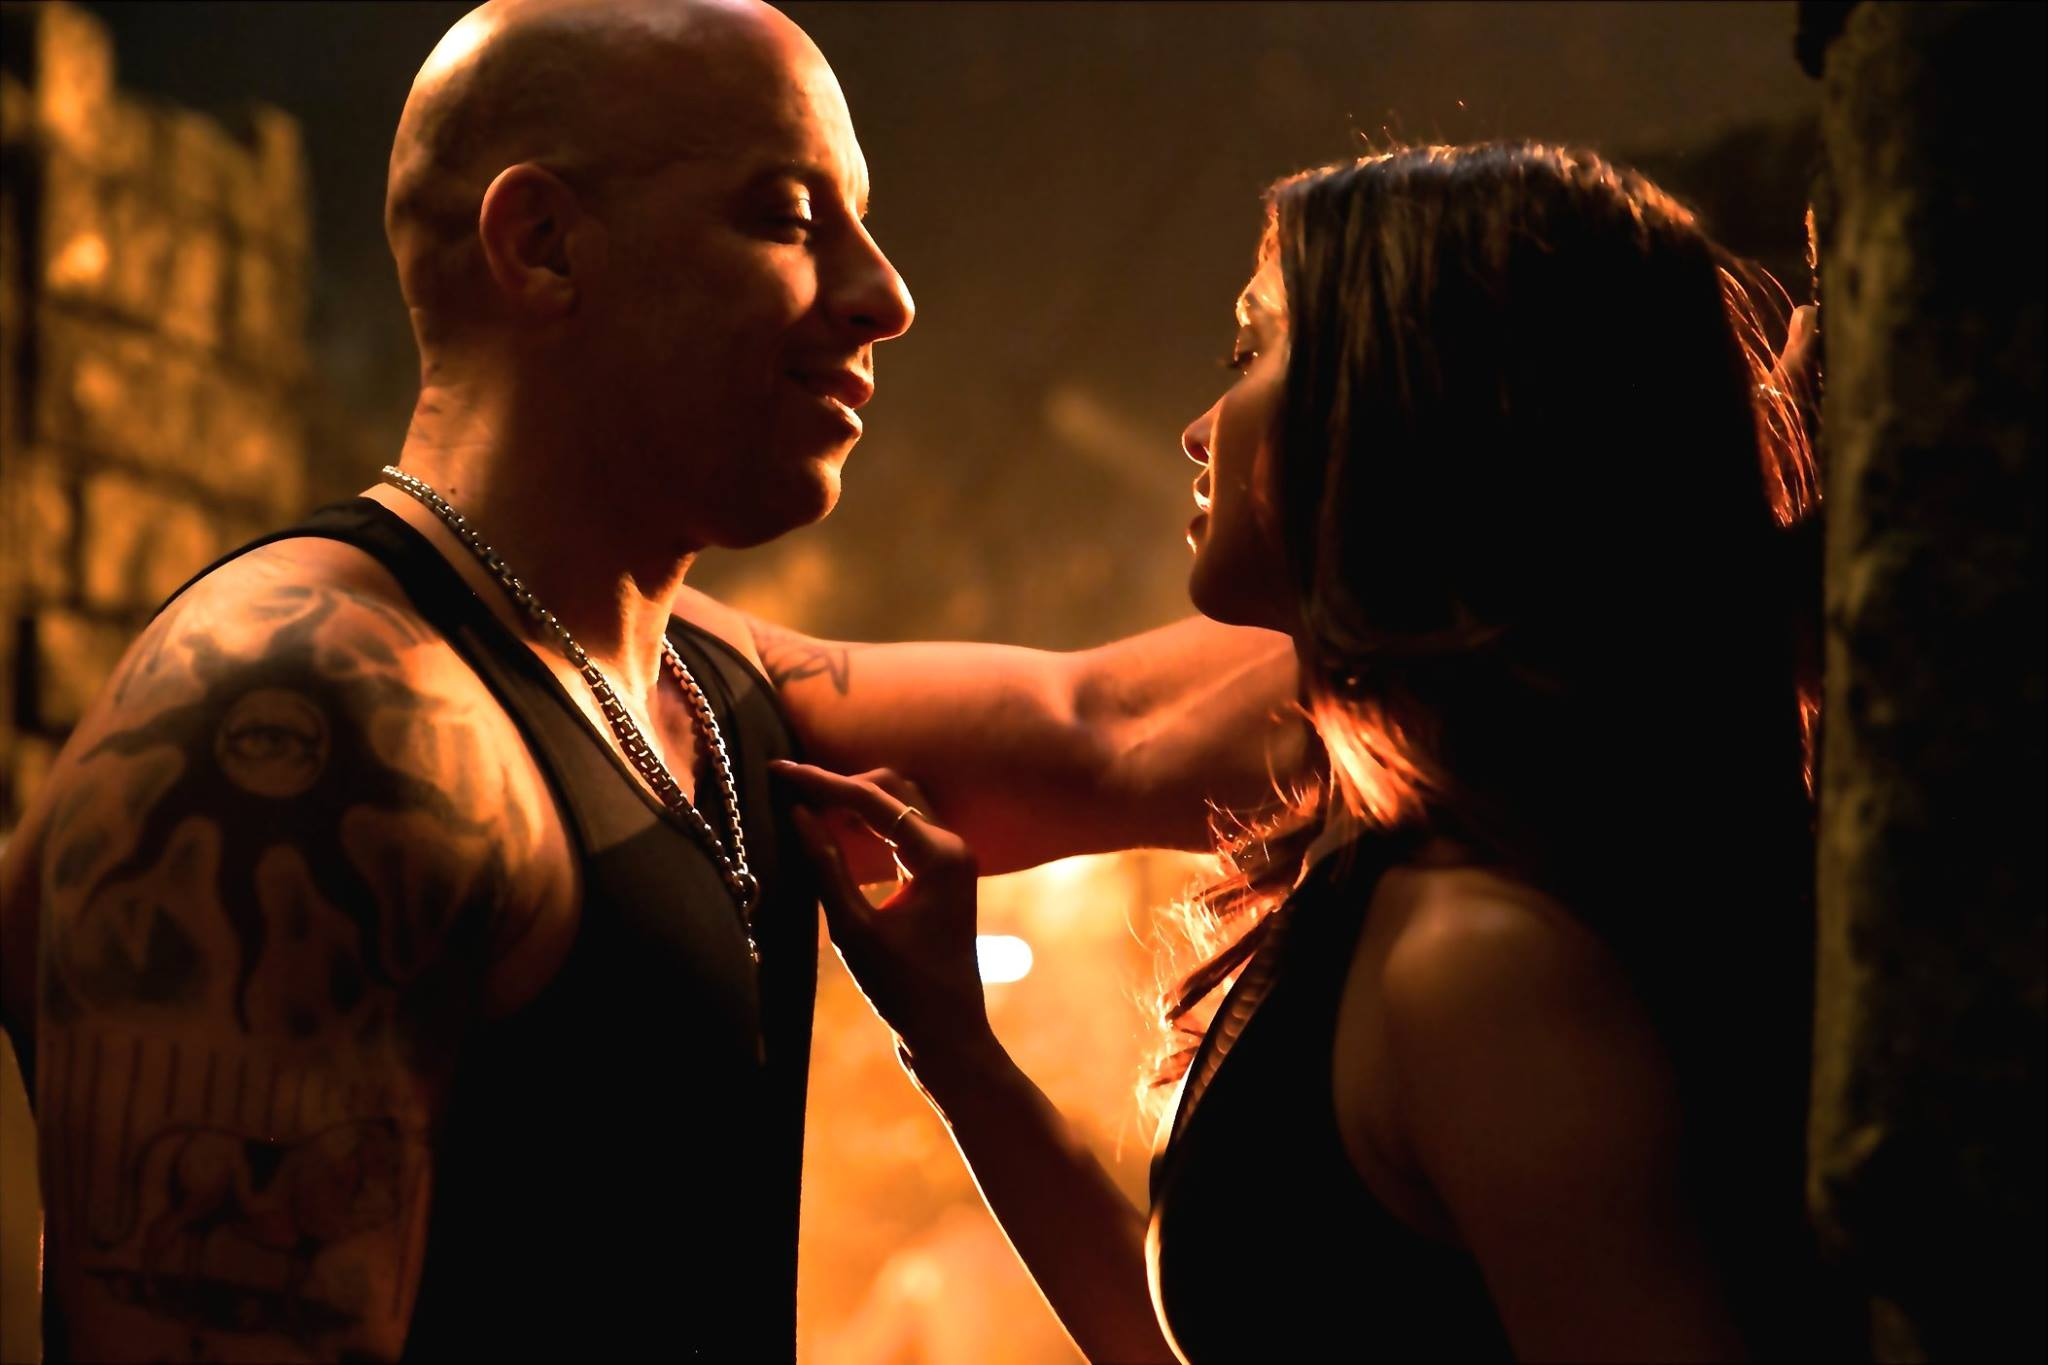 vin diesel ruby rose xXx: Return of Xander Cage